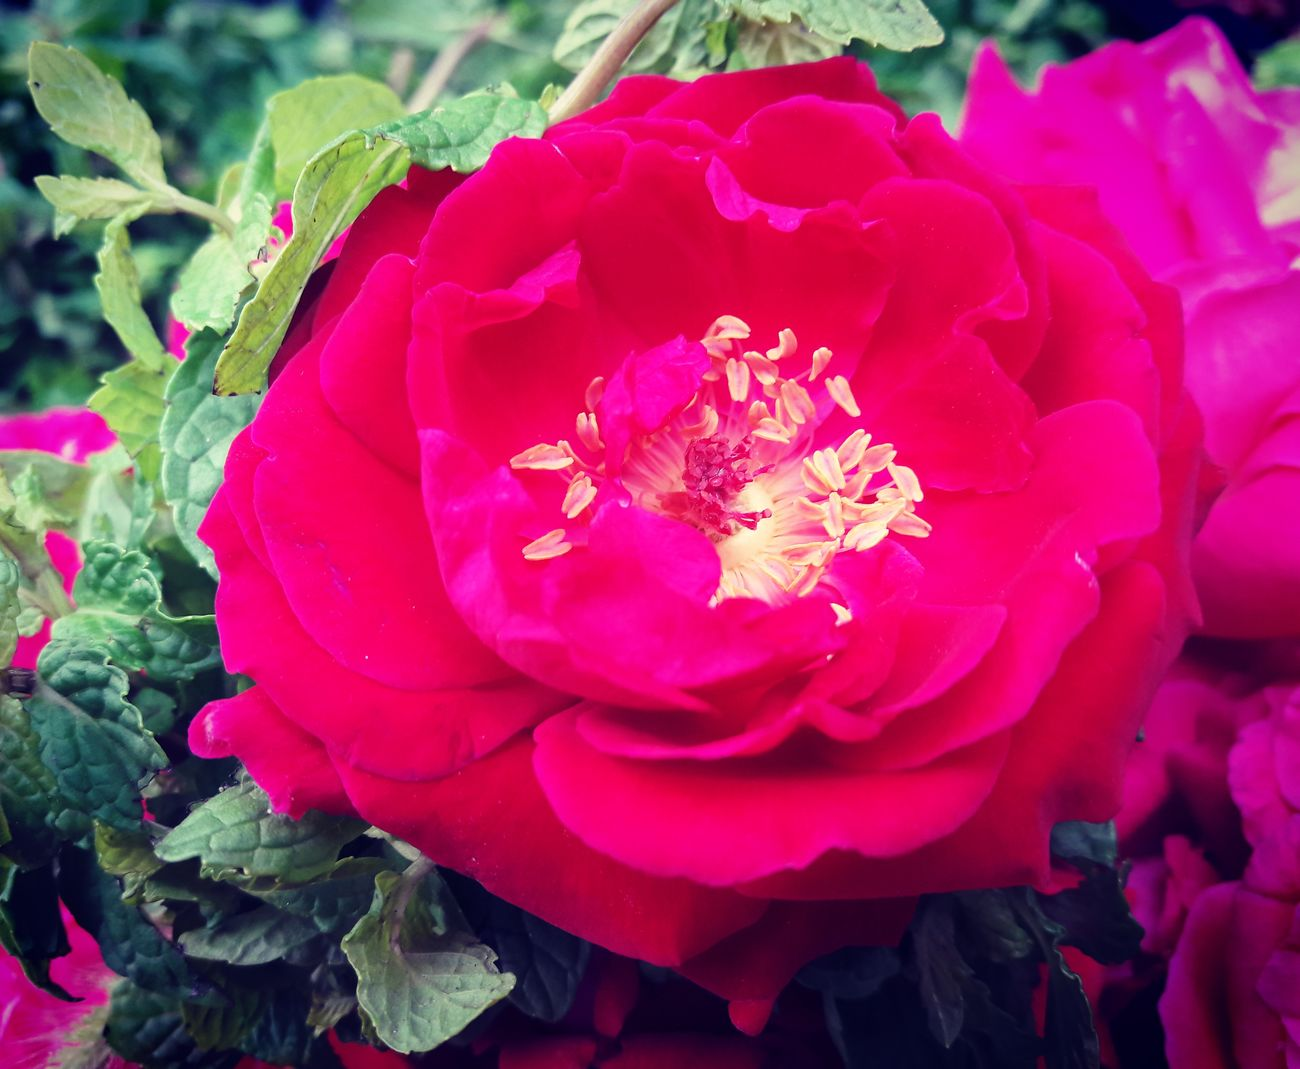 Roses SamsungJ7 Nawanlahore In Pakistan Mobilephotography Mobile Photography Red Flower Roses🌹 Red Rose Red This Week On Eyeem Flower Urban Spring Fever Eyeem Pakistan